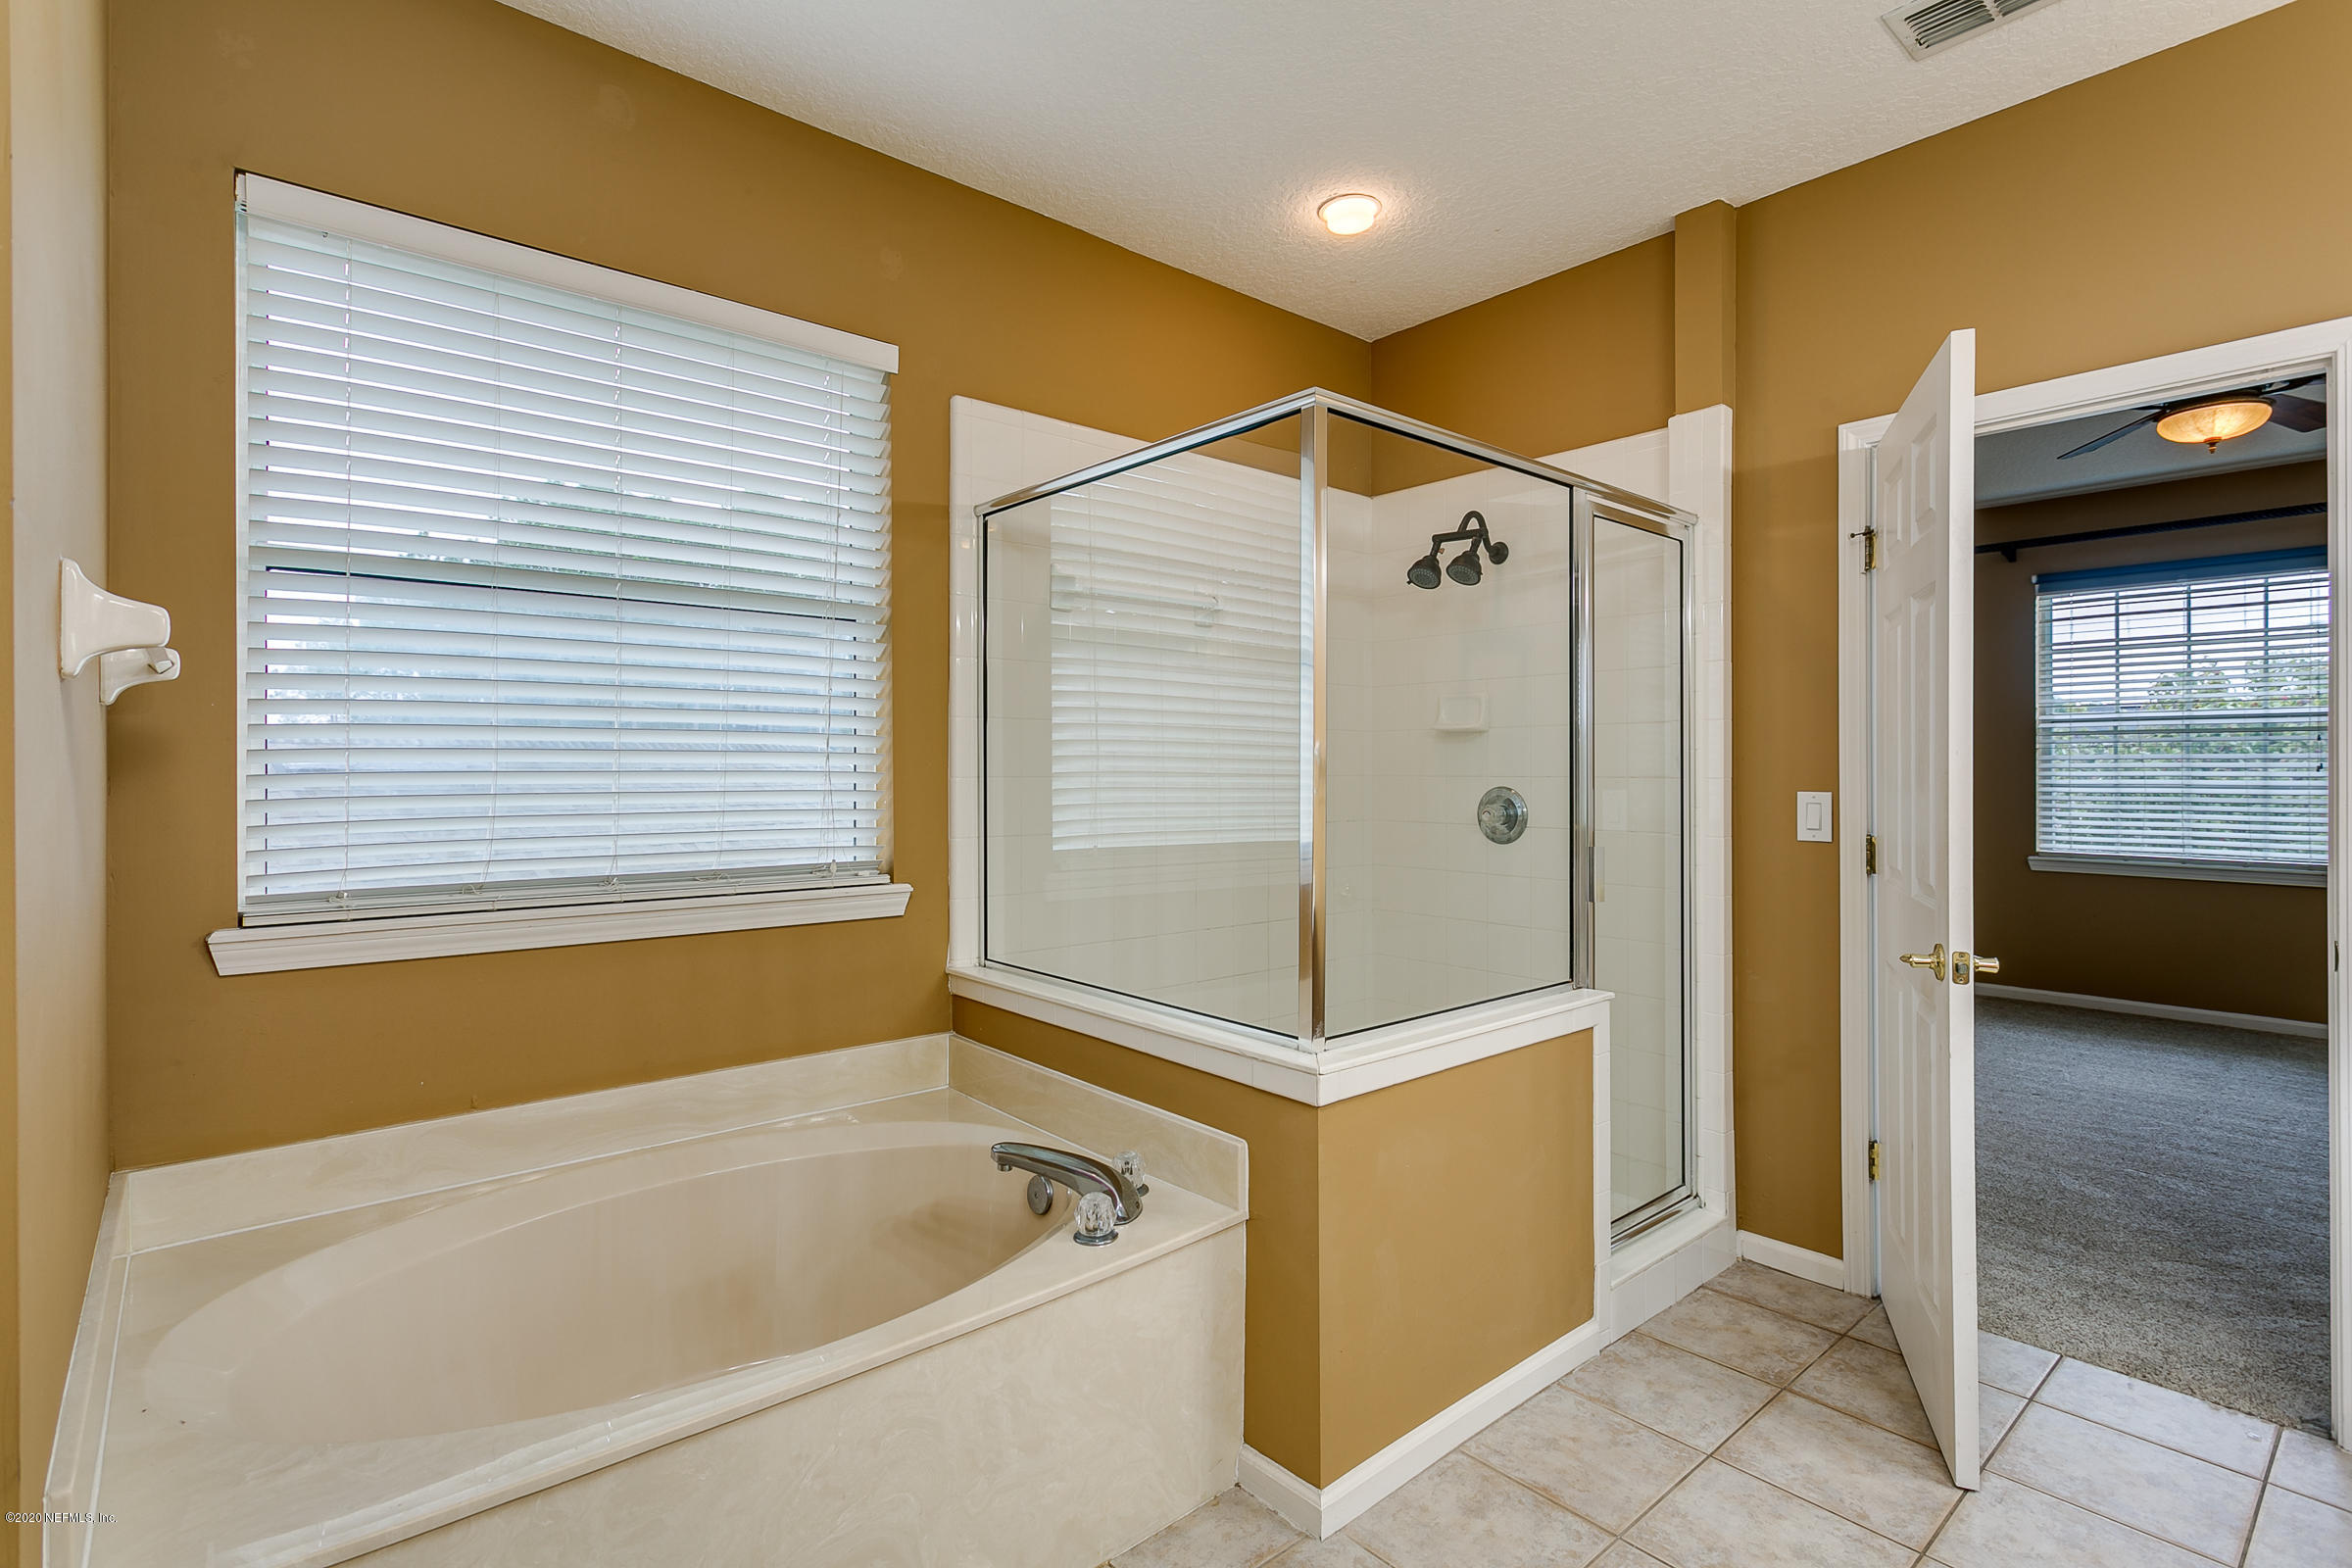 2417 SOUTHERN LINKS, FLEMING ISLAND, FLORIDA 32003, 6 Bedrooms Bedrooms, ,4 BathroomsBathrooms,Residential,For sale,SOUTHERN LINKS,1082724